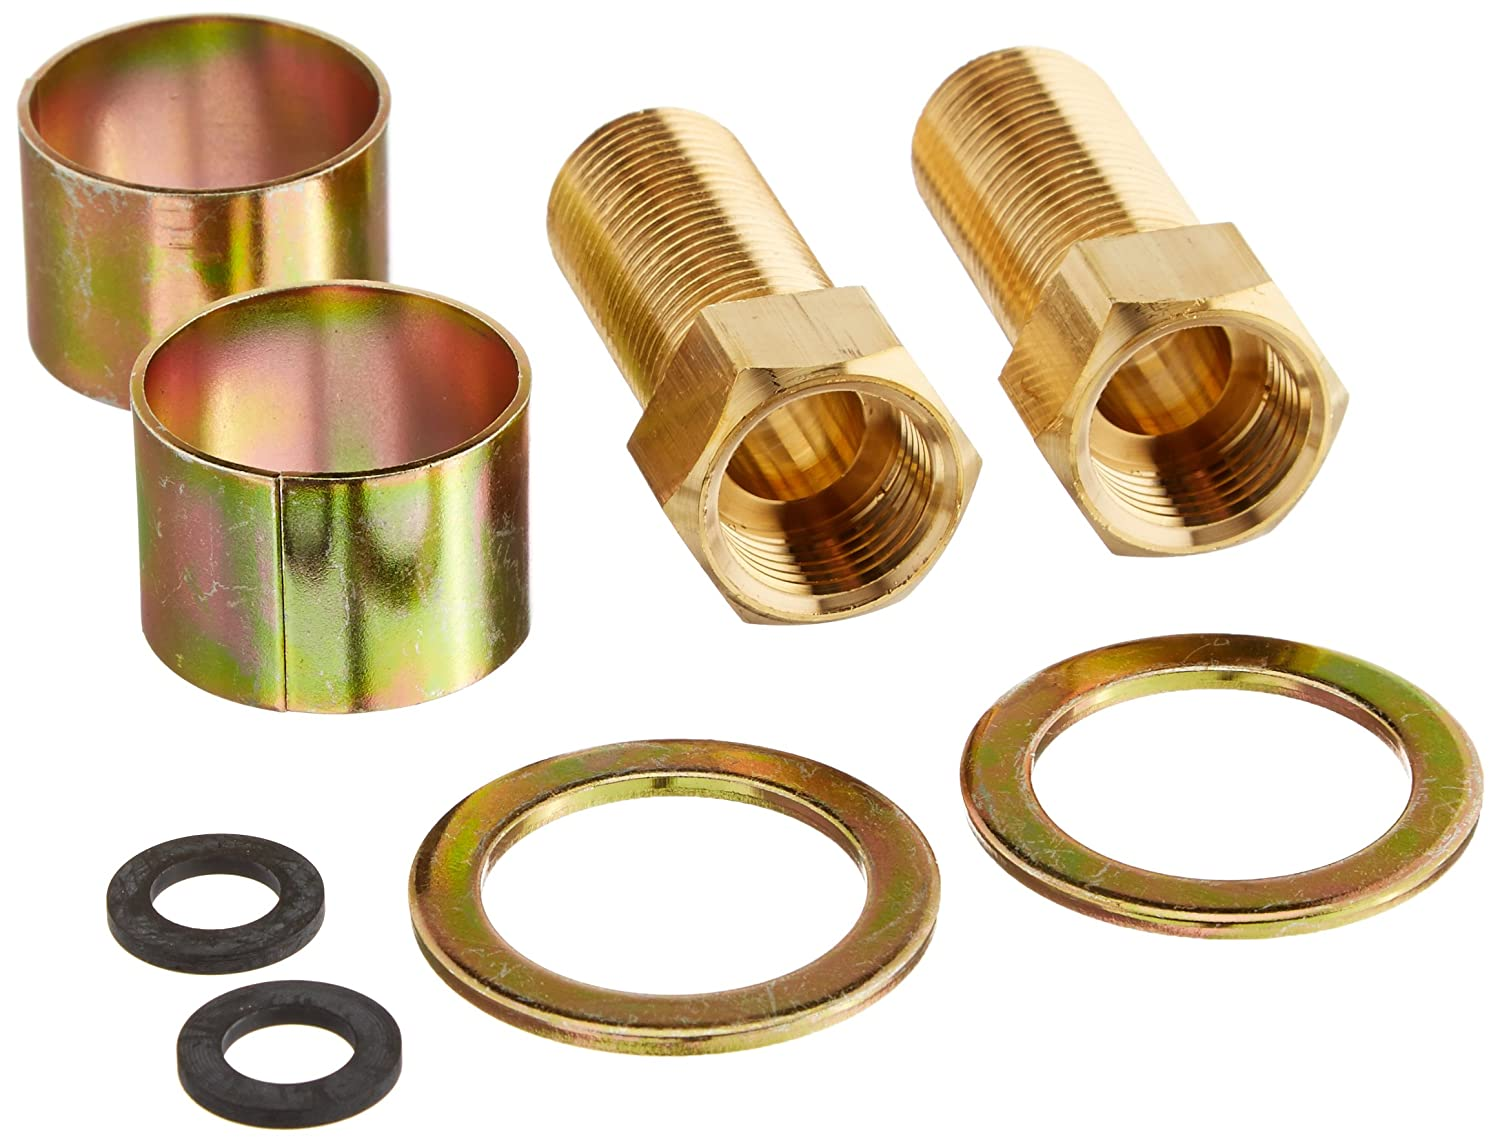 Amazon.com: Moen 100818 Thick Deck Extension Kit for Valves with 1 ...